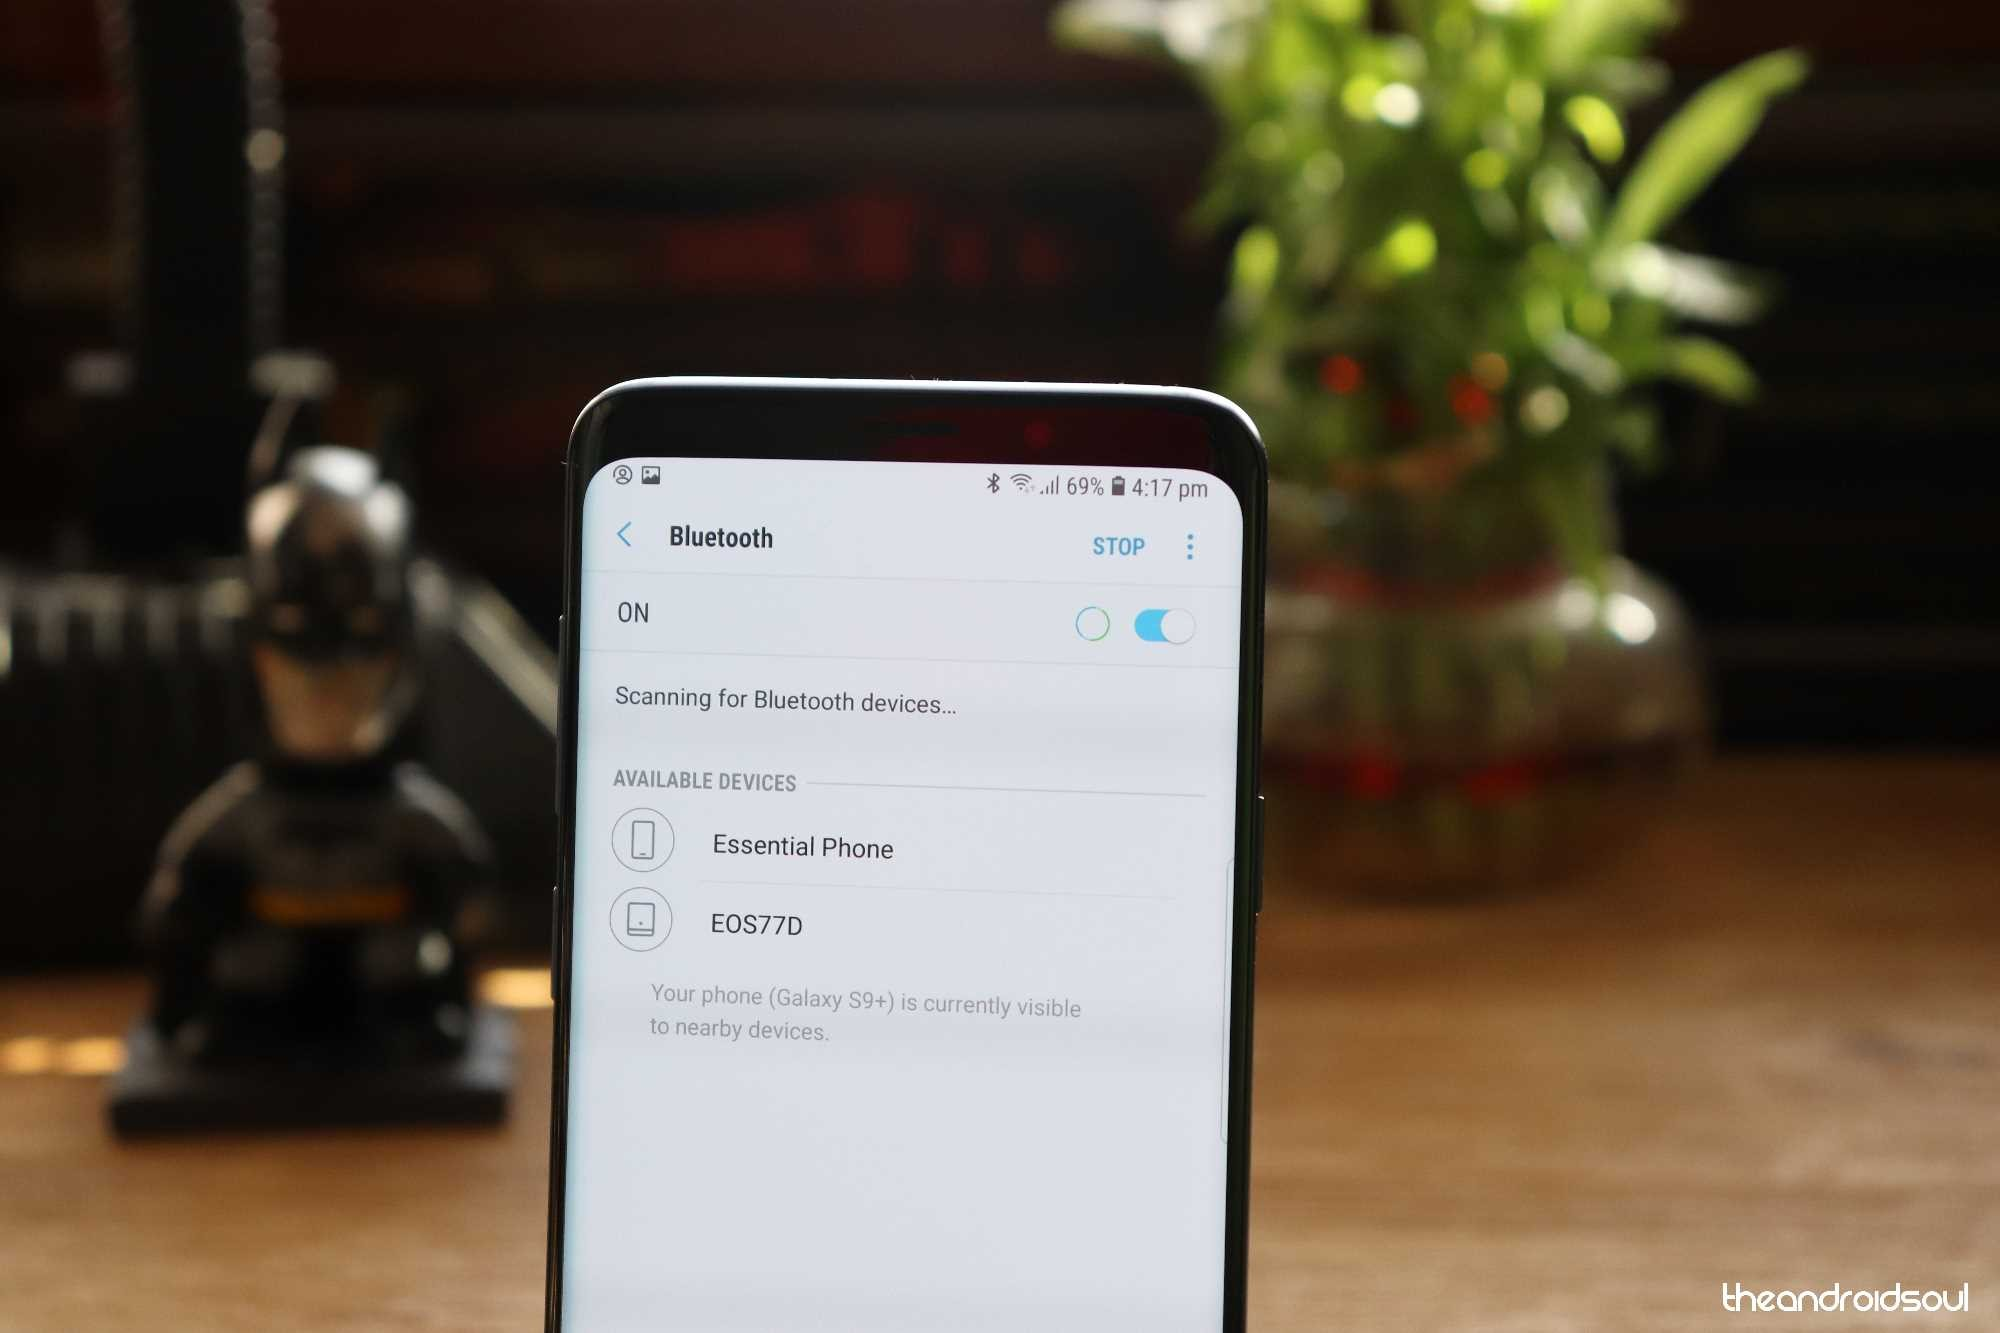 Galaxy s9 Bluetooth issues